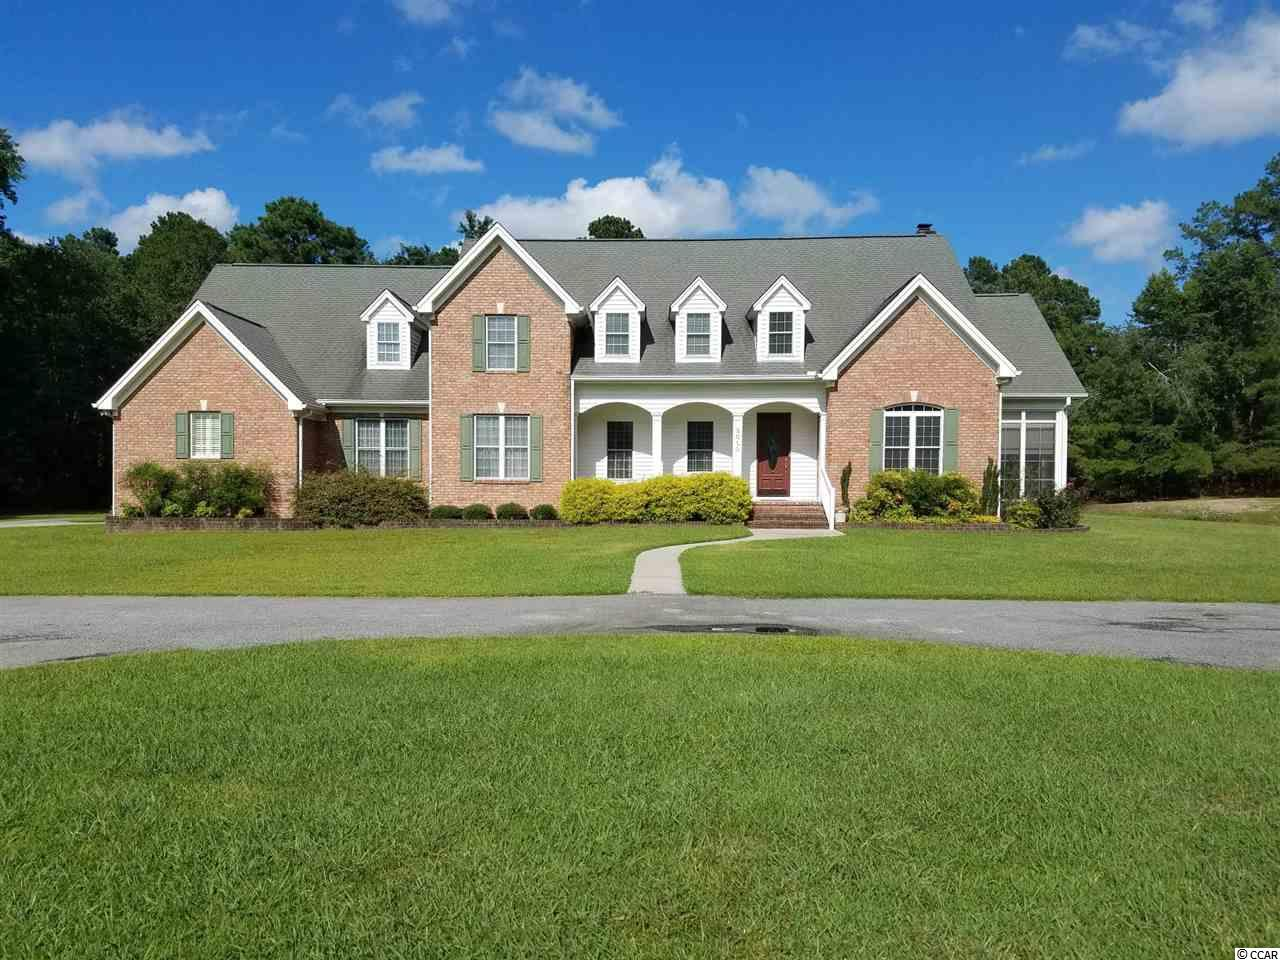 Single Family Home for Sale at 2010 Pee Dee Hiwy 2010 Pee Dee Hiwy Conway, South Carolina 29527 United States